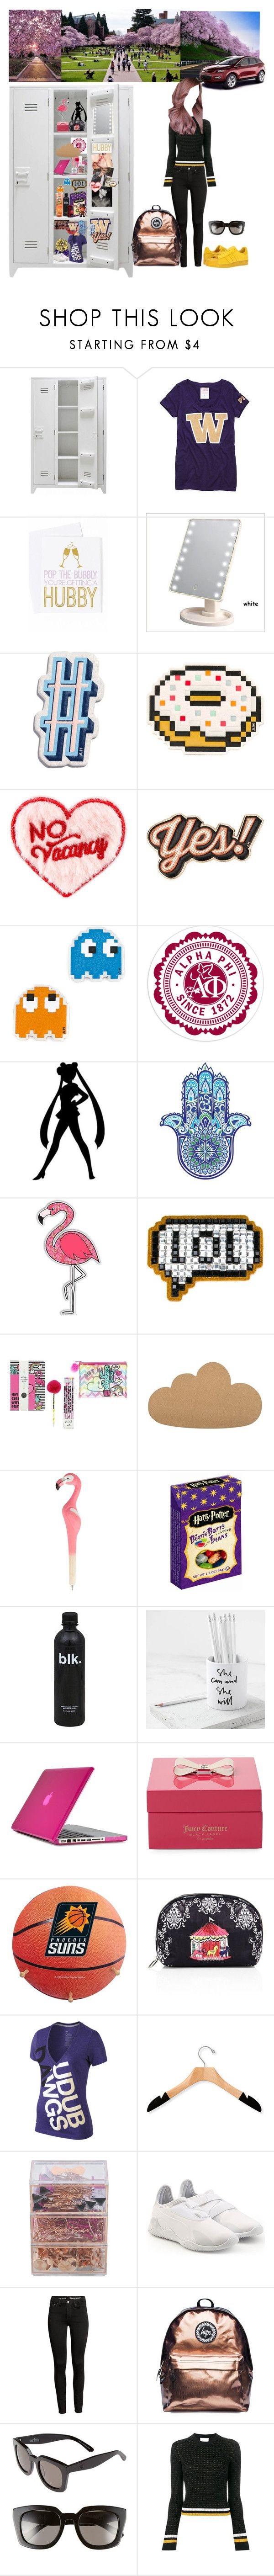 """University idea"" by aliceridler ❤ liked on Polyvore featuring Victoria's Secret, Ann Page, Anya Hindmarch, Bloomingville, Sass & Belle, Jelly Belly, Speck, Juicy Couture, LeSportsac and NIKE"